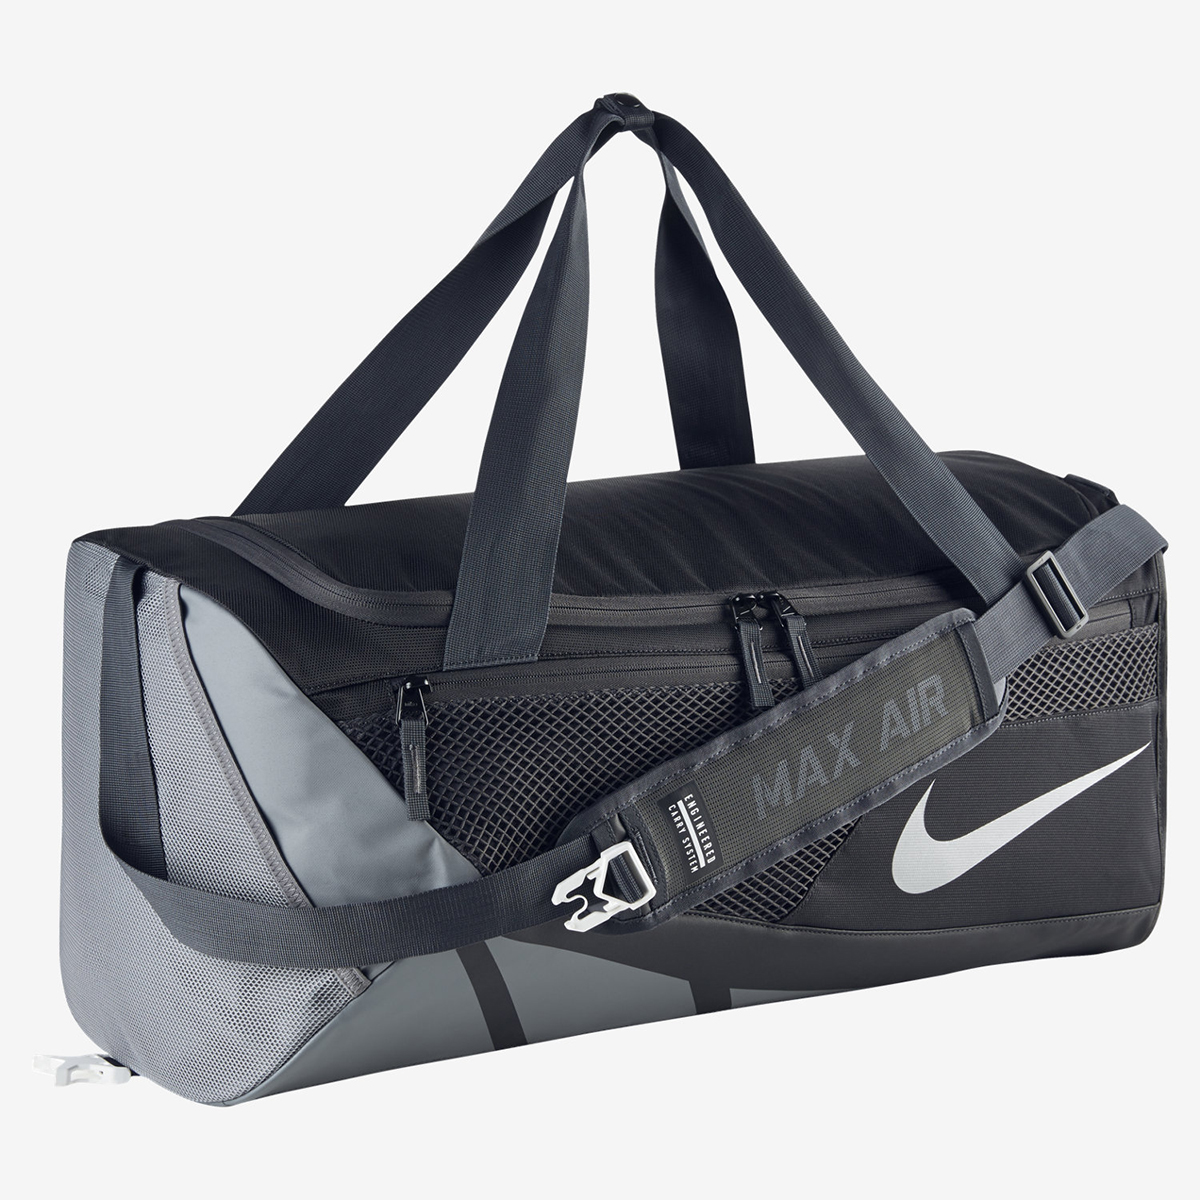 2802b3ba9bab Nike Vapor Max Air 2.0 Duffel Bag - SPORTING GOODS Backpacks ...